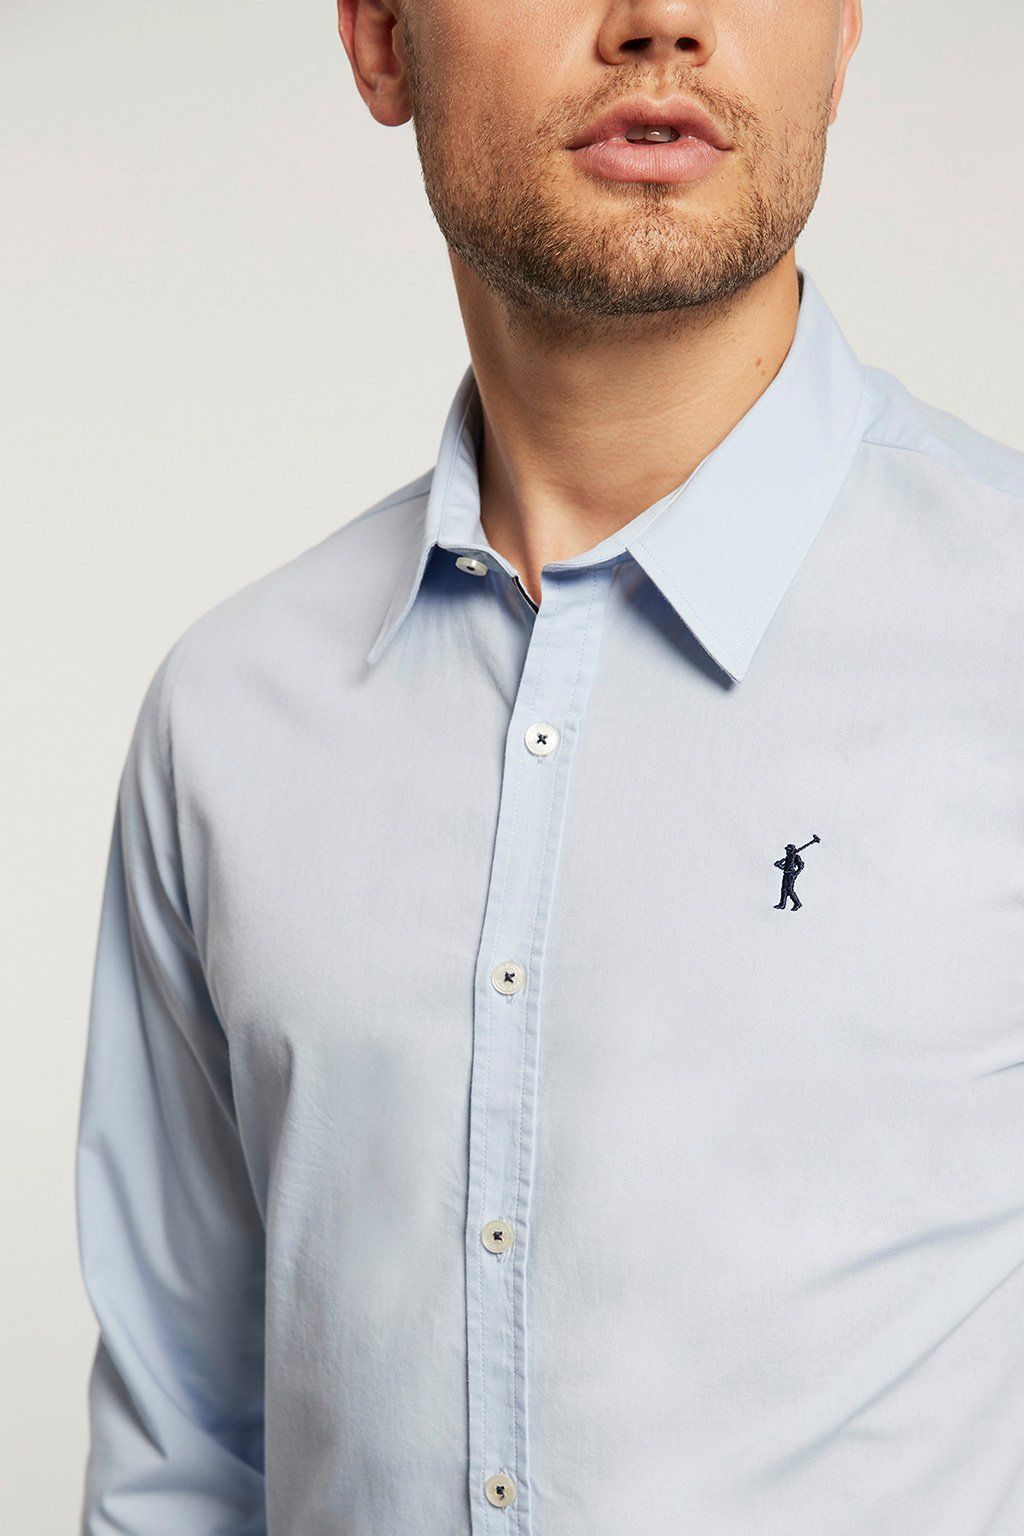 Camisa slim fit celeste con logo bordado